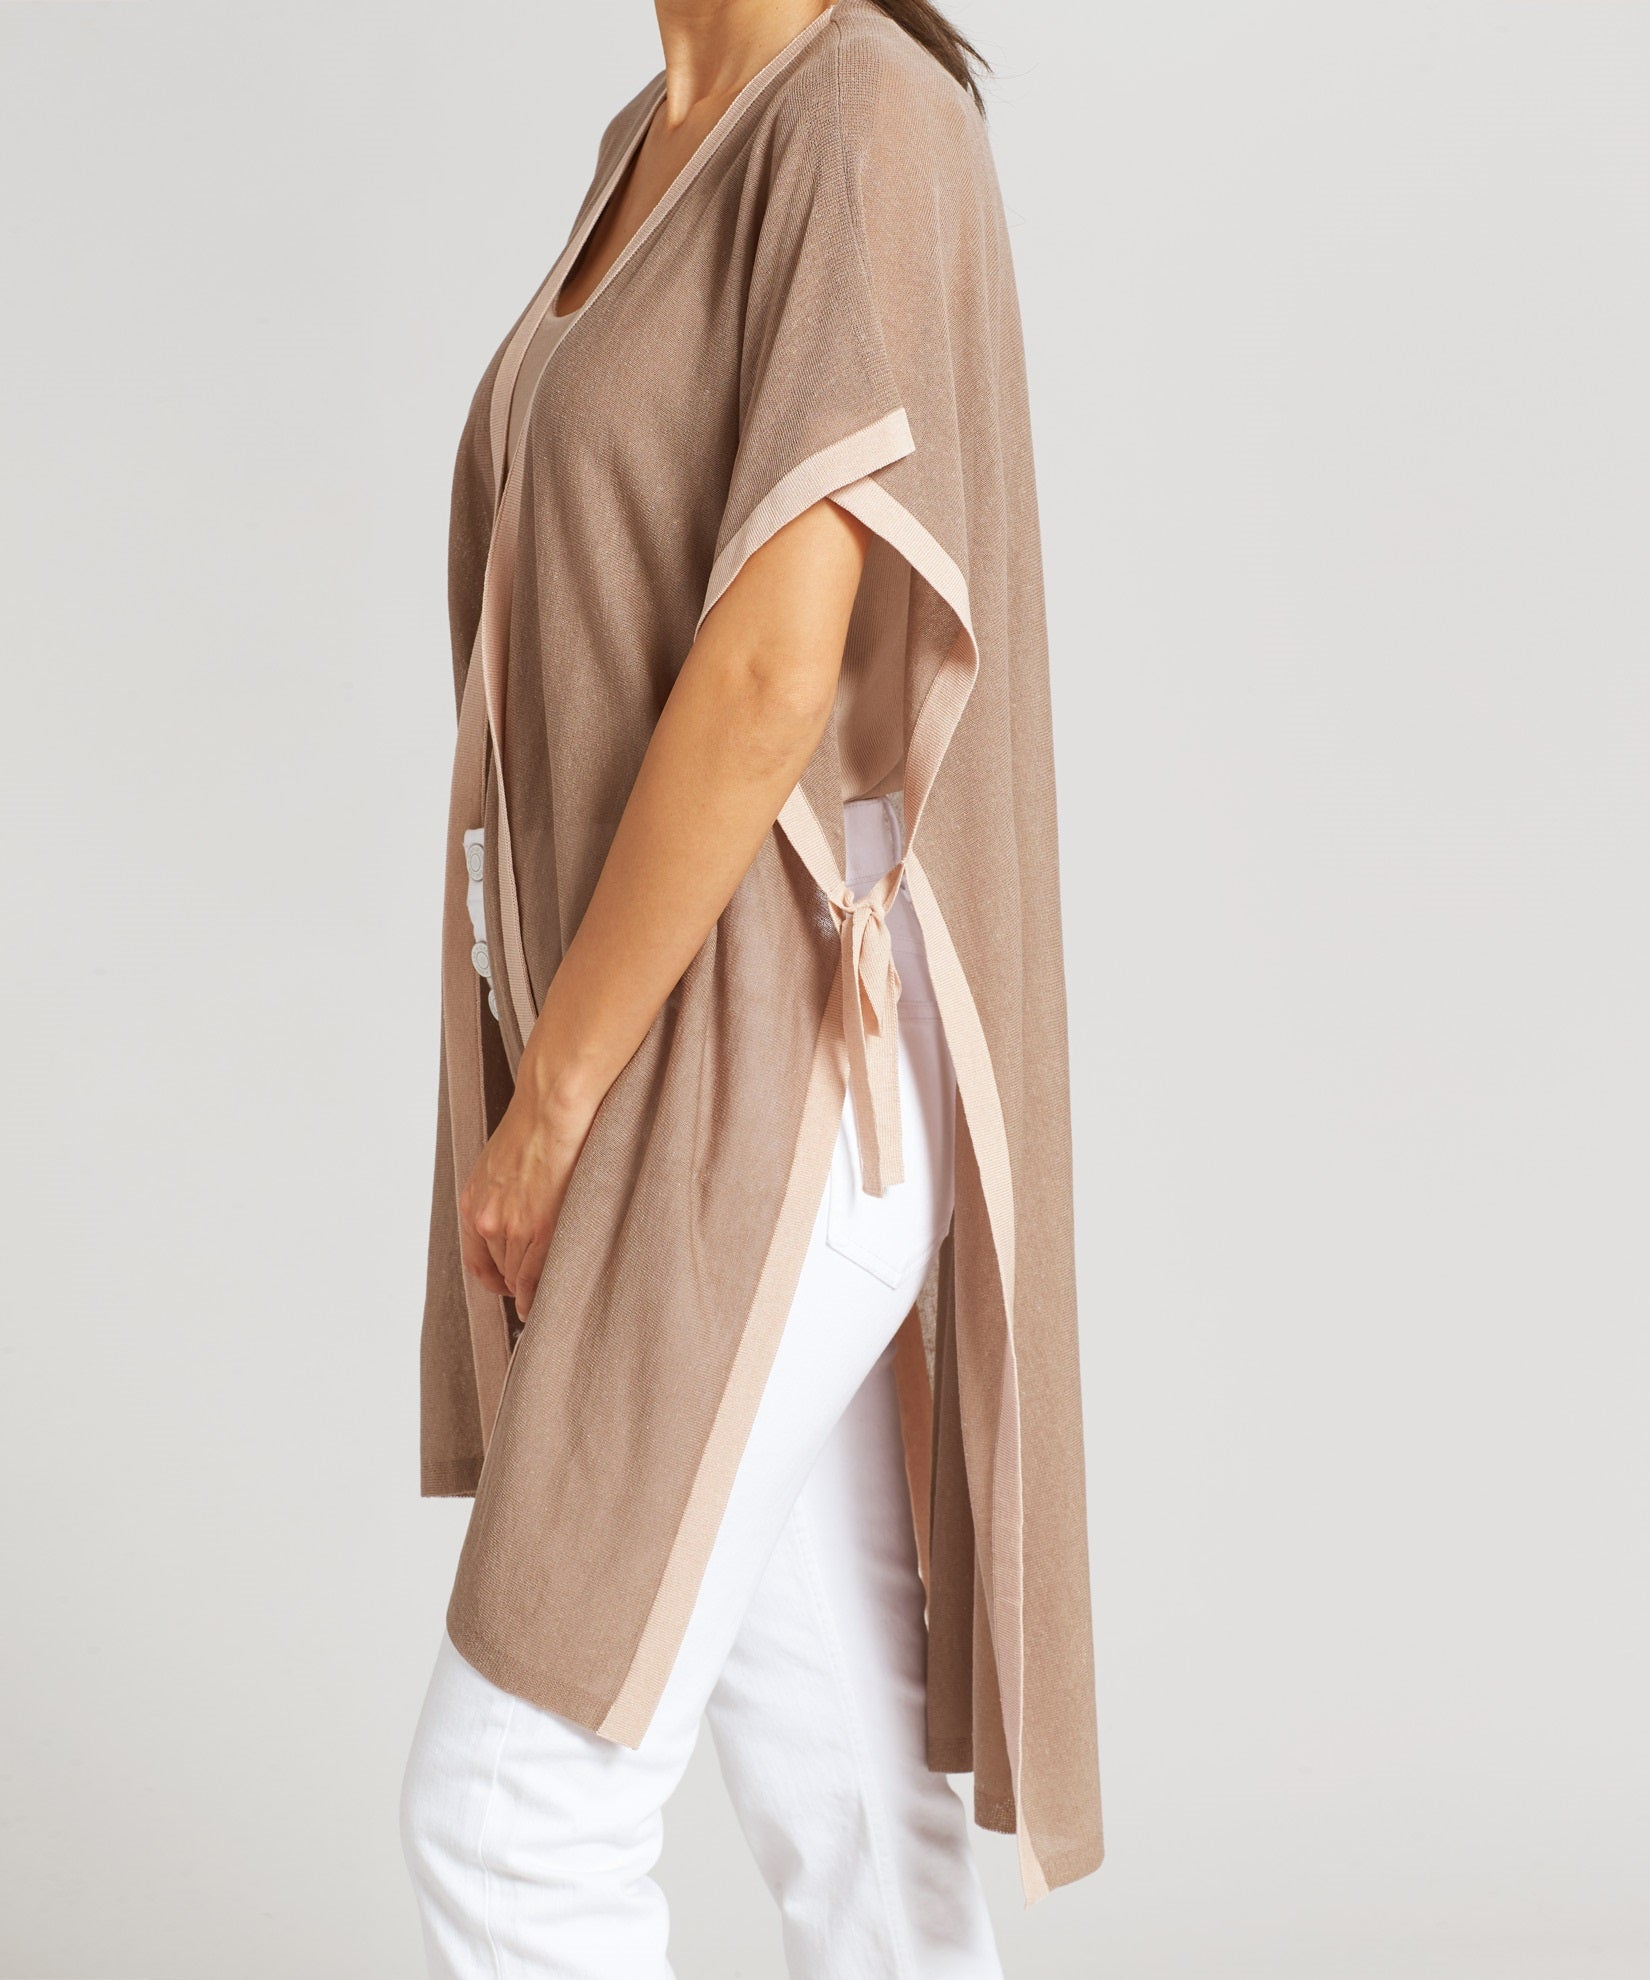 Chai - Meadow Knit Side Tie Ruana